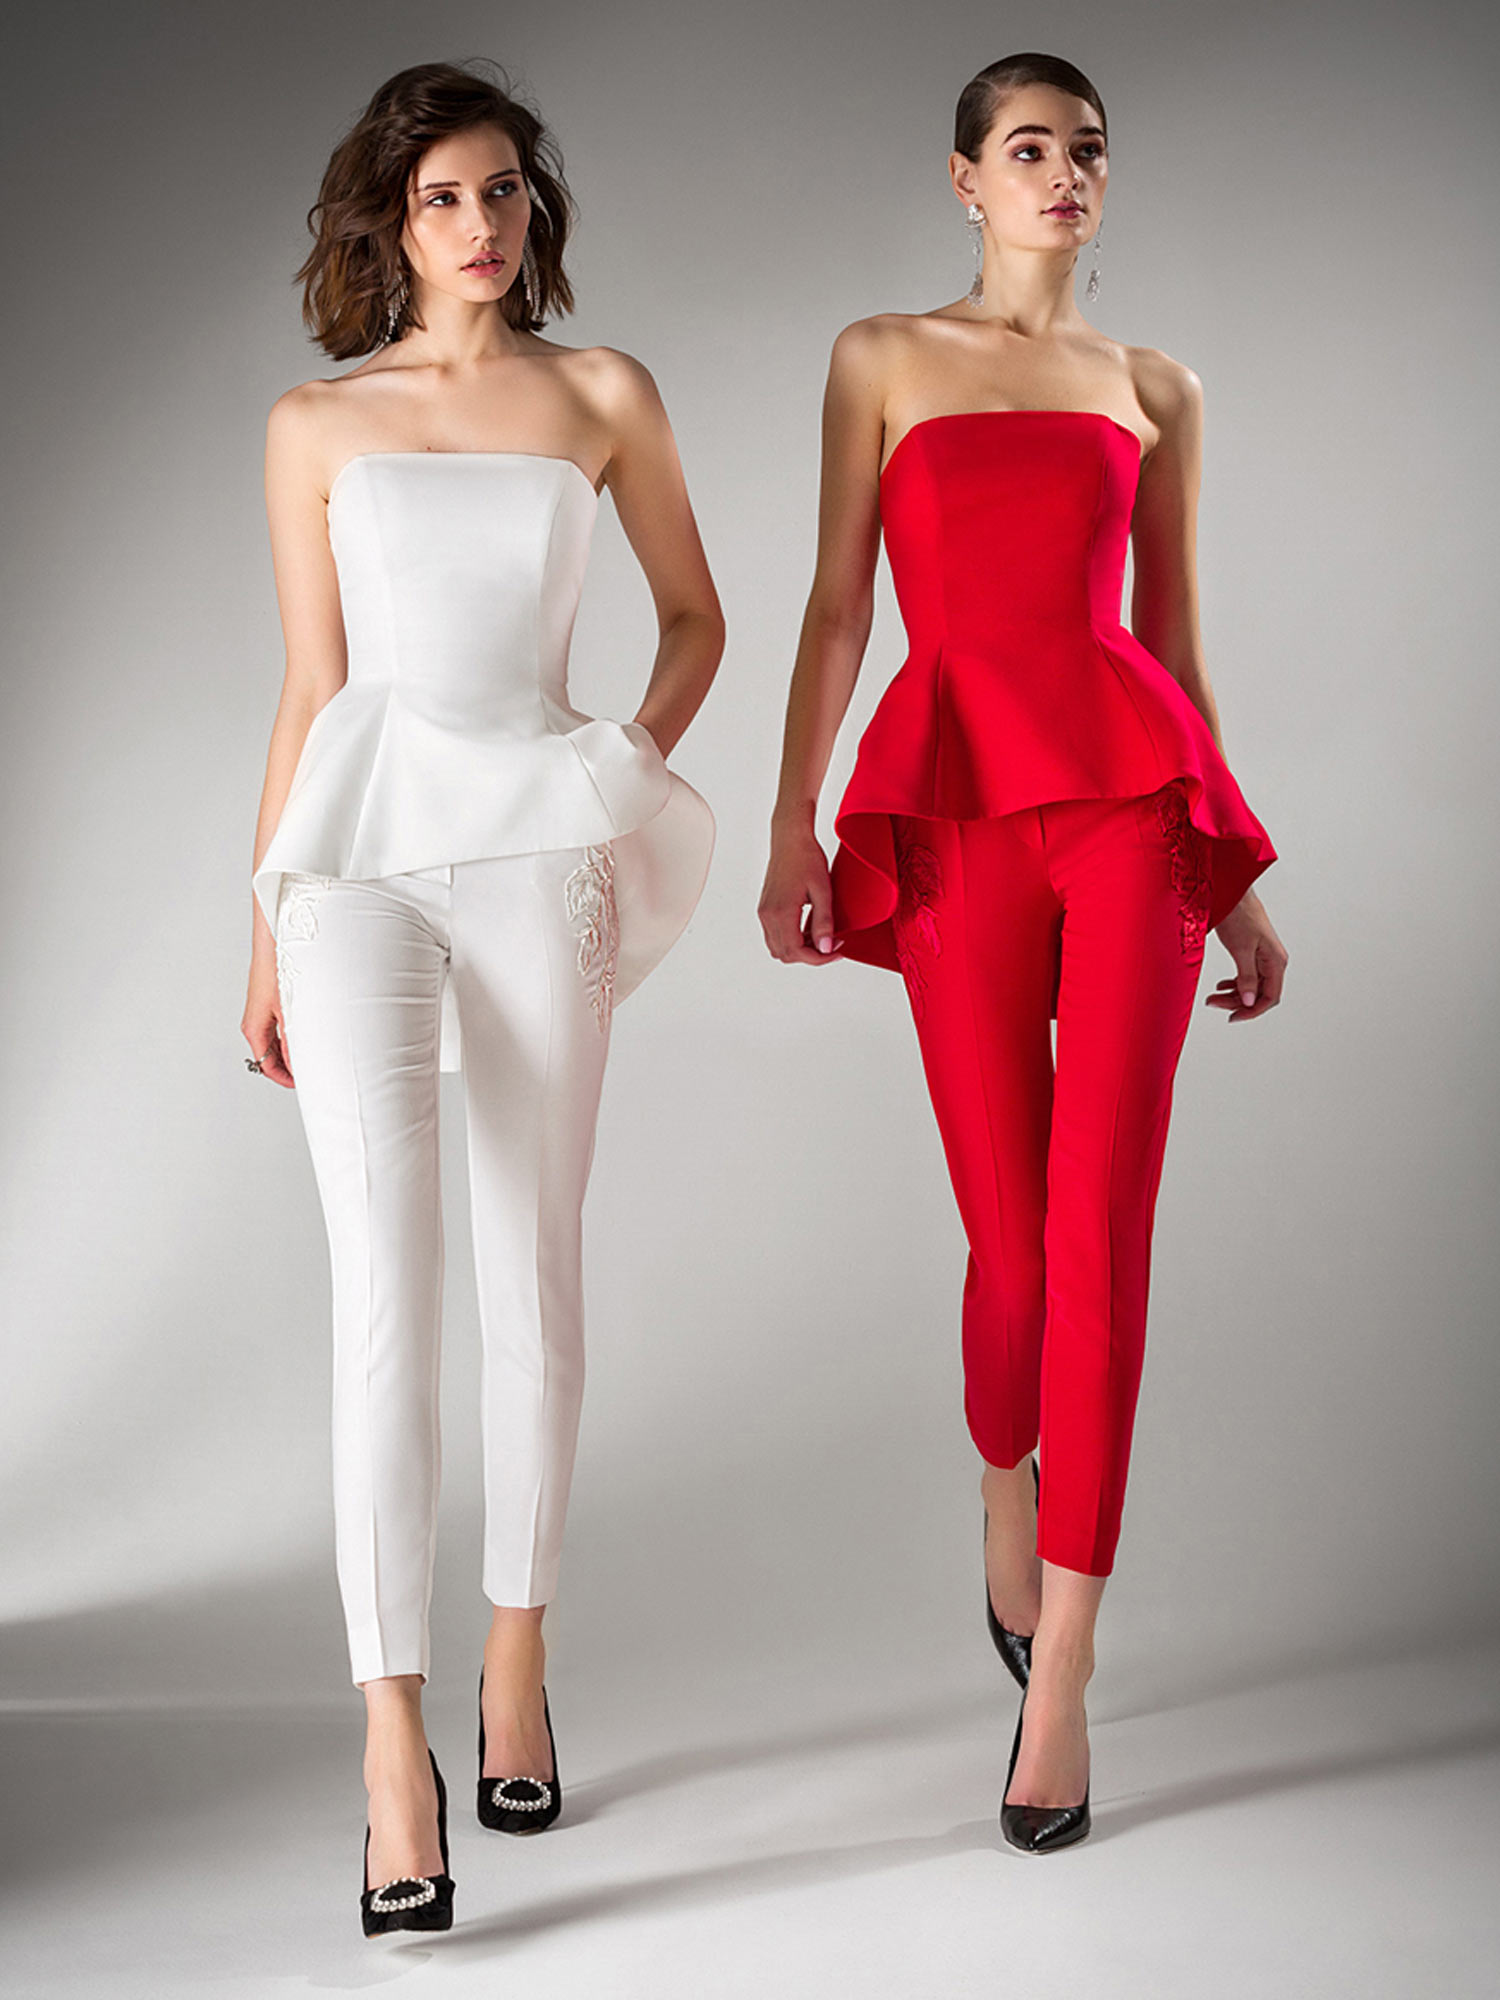 Style #435-3, Style #435-4, available in ivory, pink, red, blue